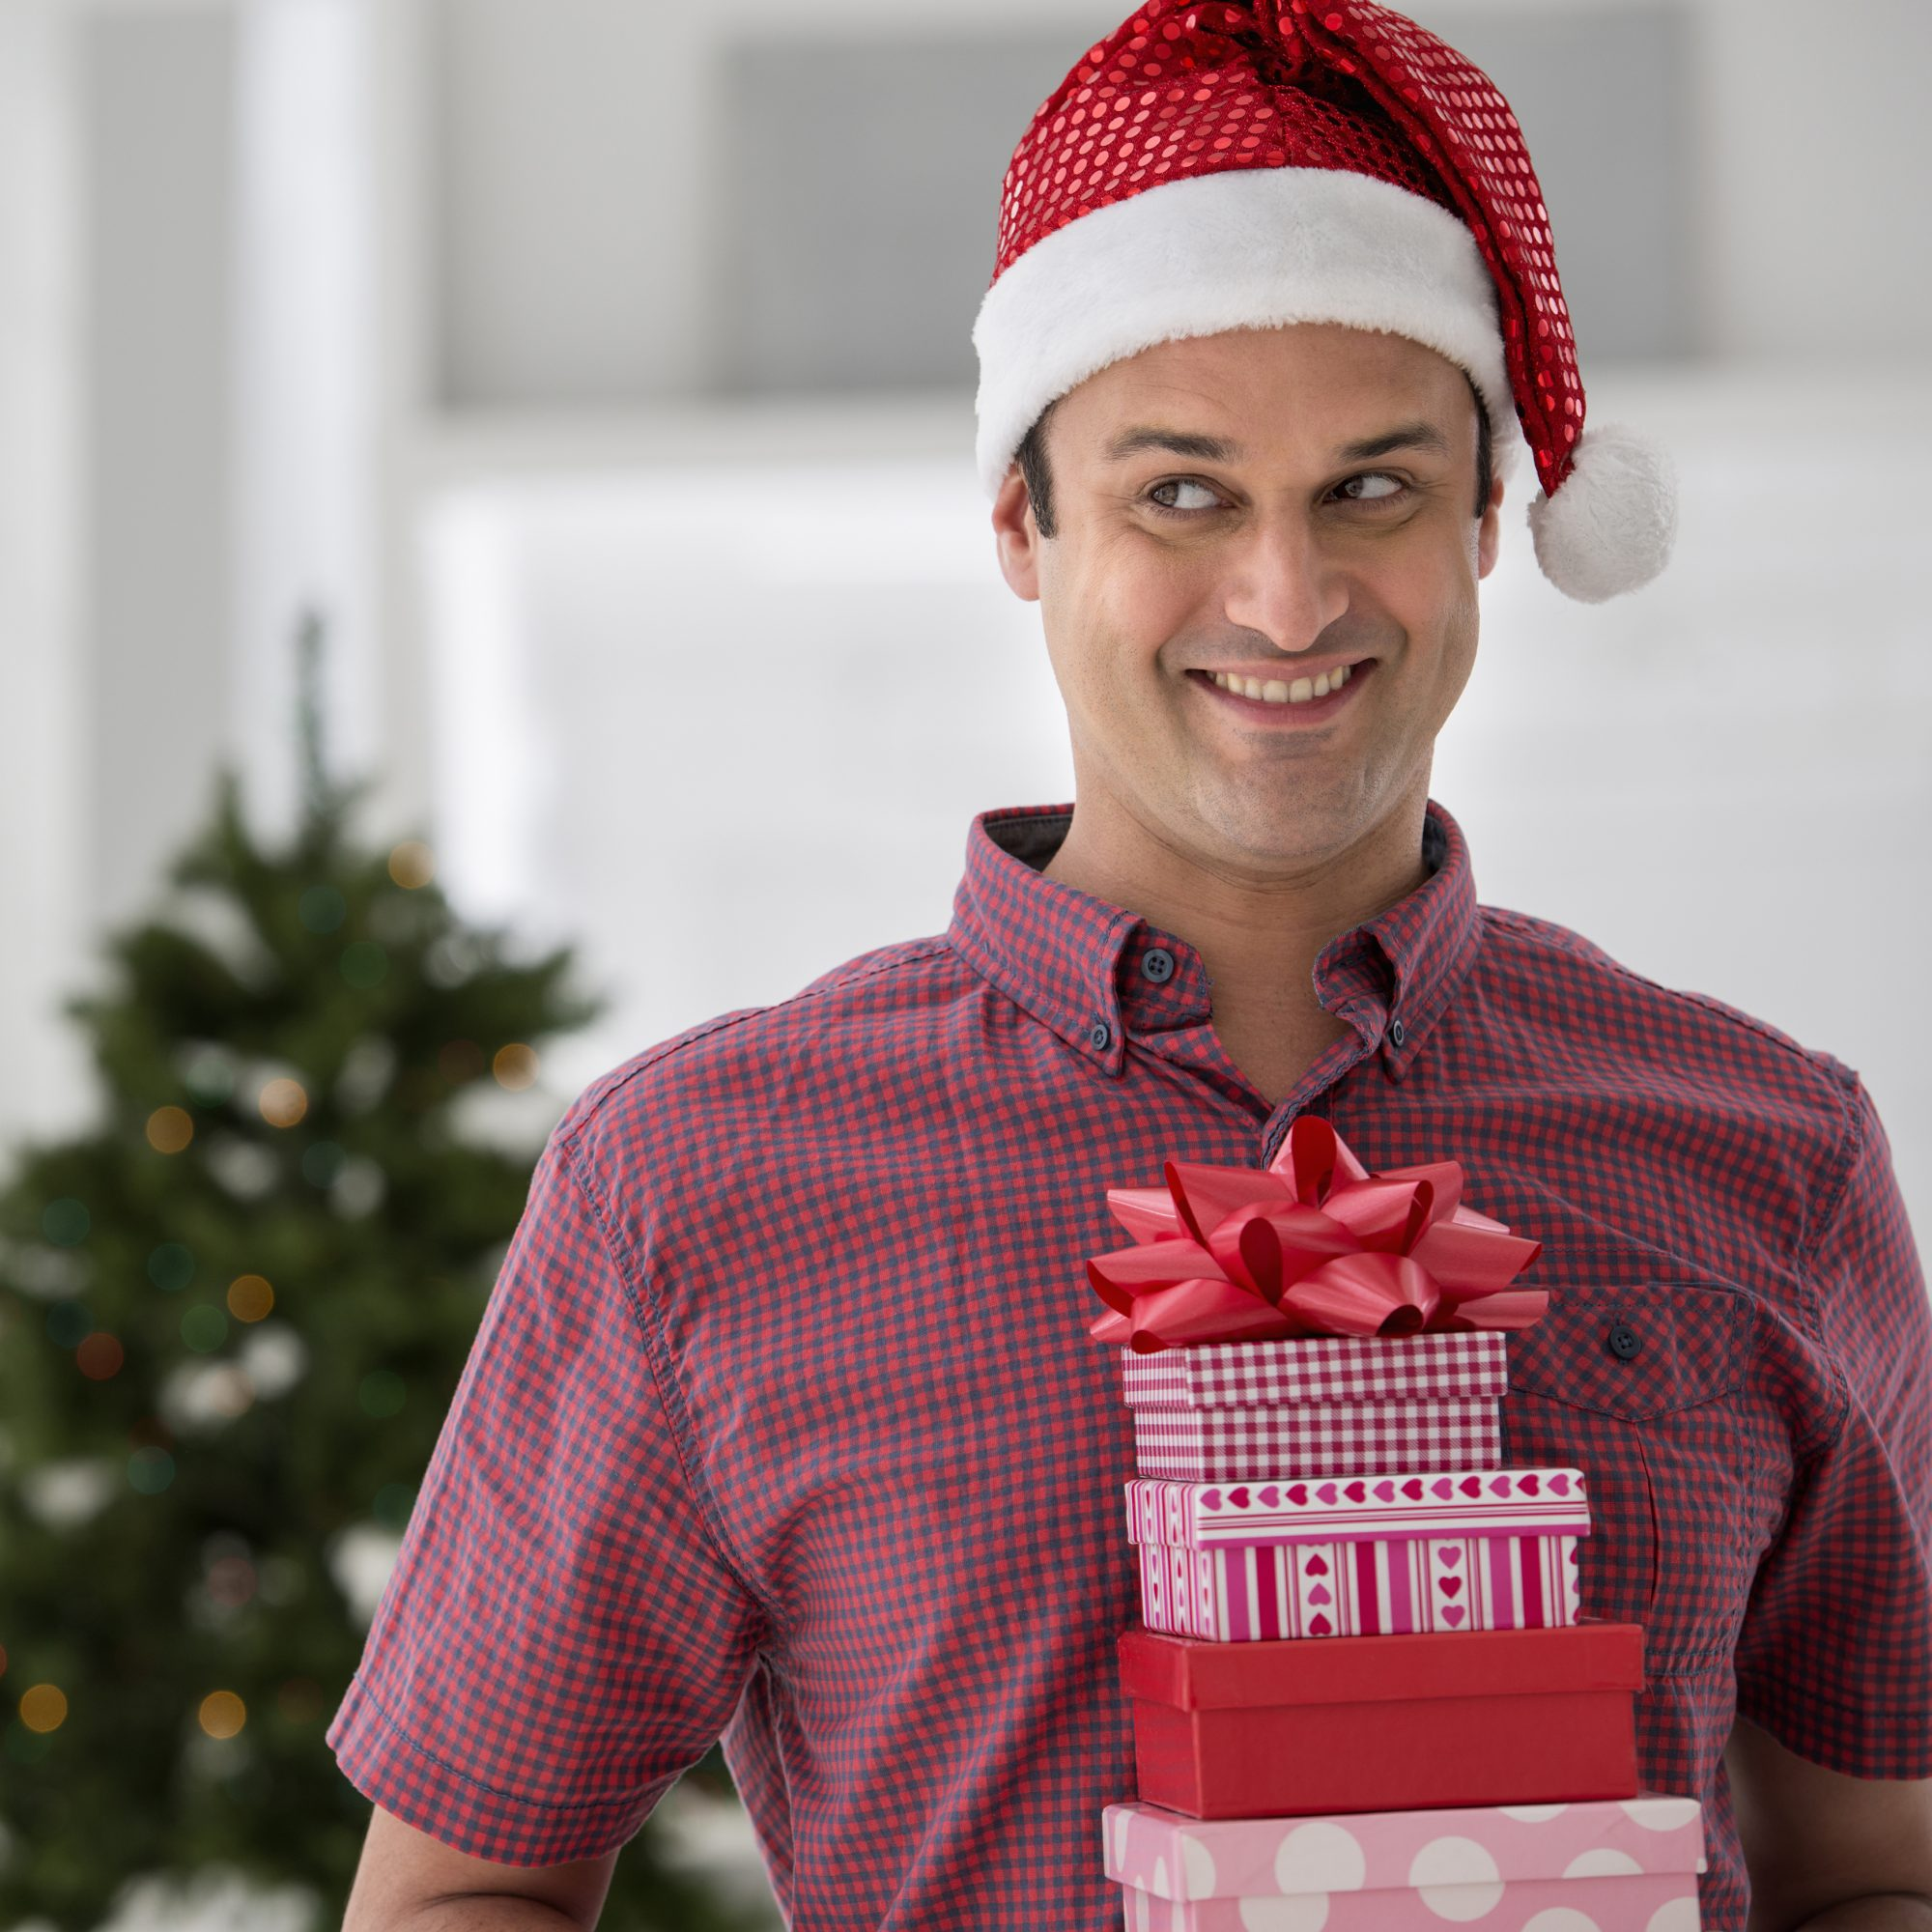 7 Steps To Identifying Your Secret Santa